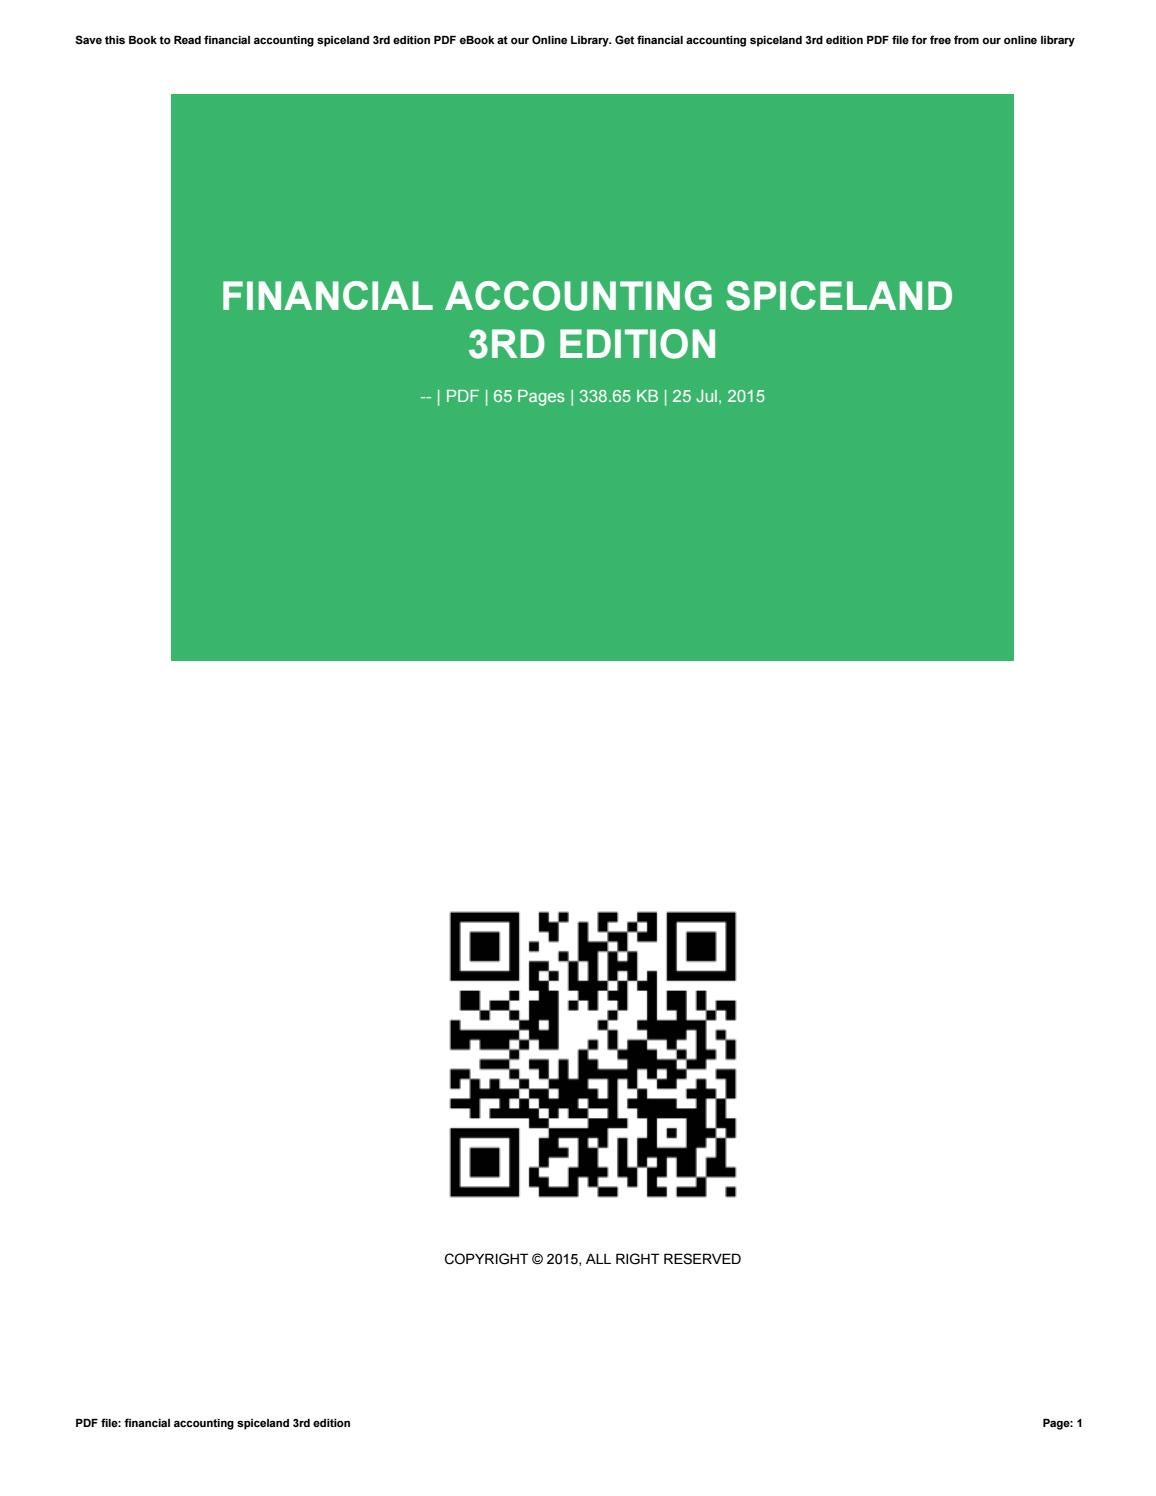 Financial Accounting Spiceland 3rd Edition By Toon13 Issuu